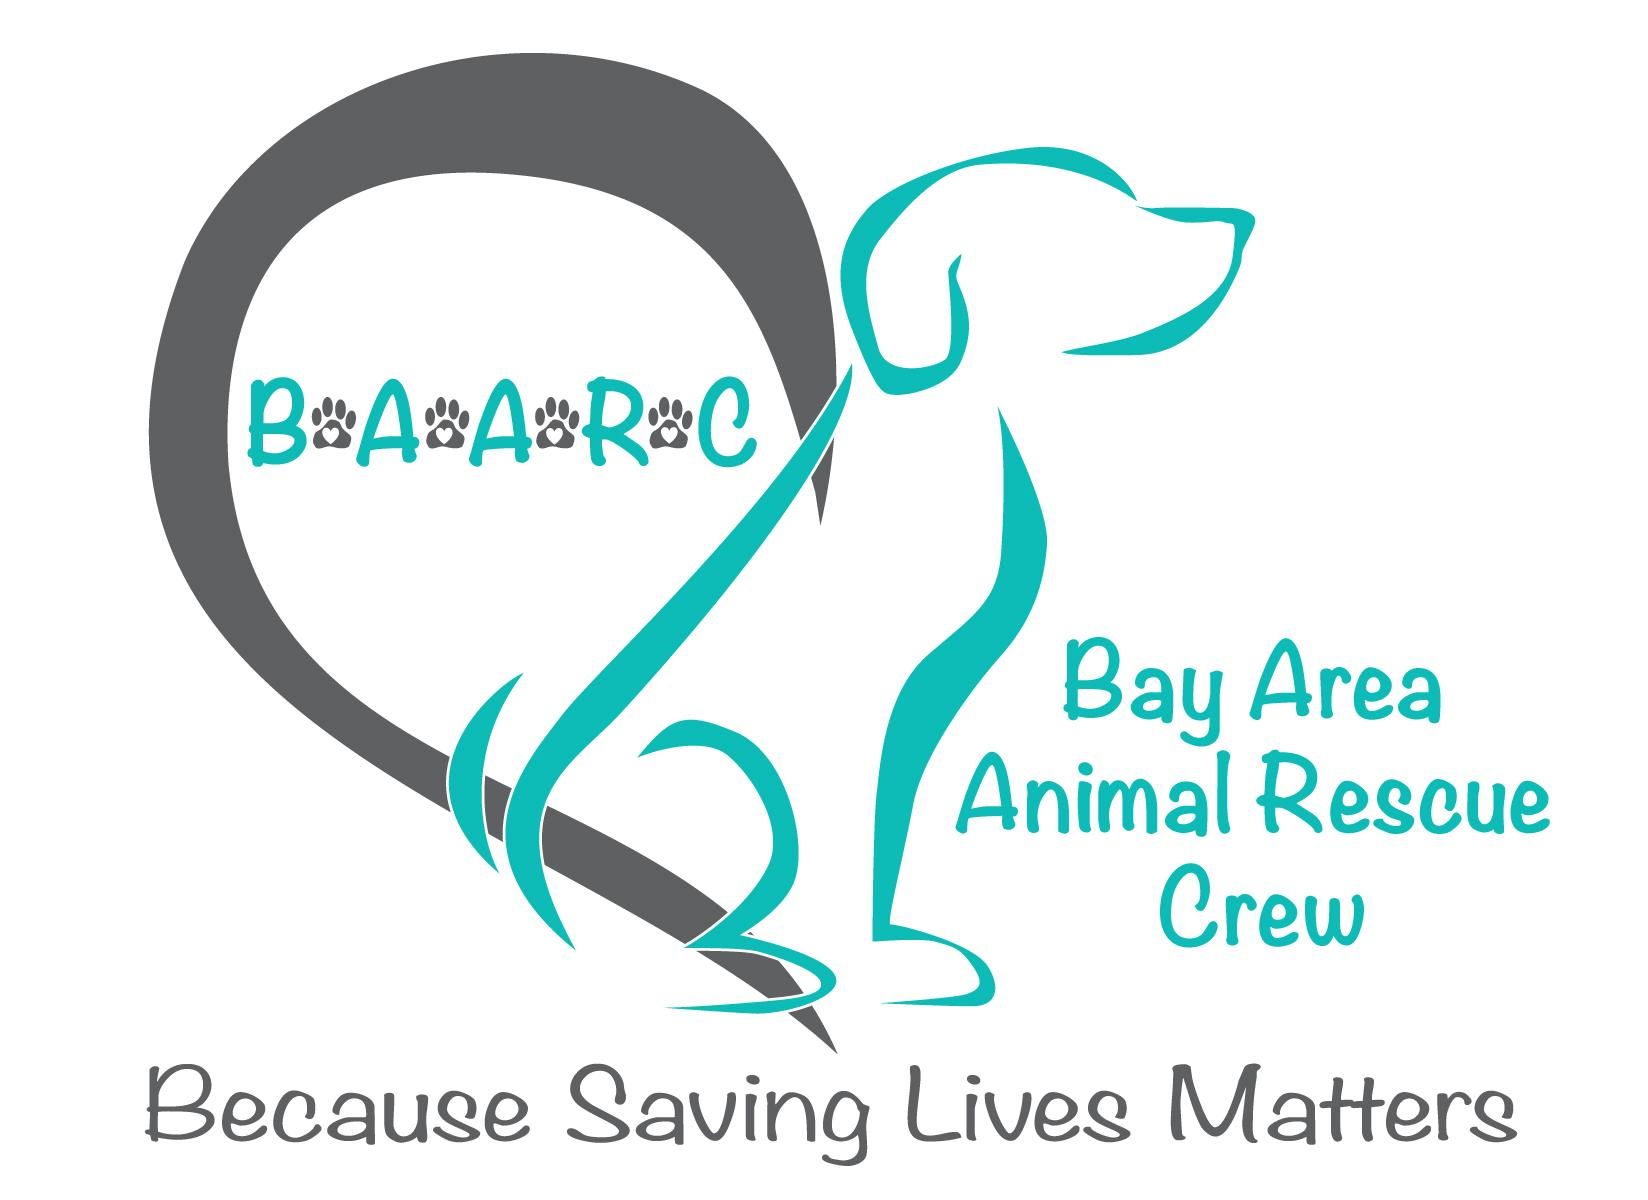 Bay Area Animal Rescue Crew